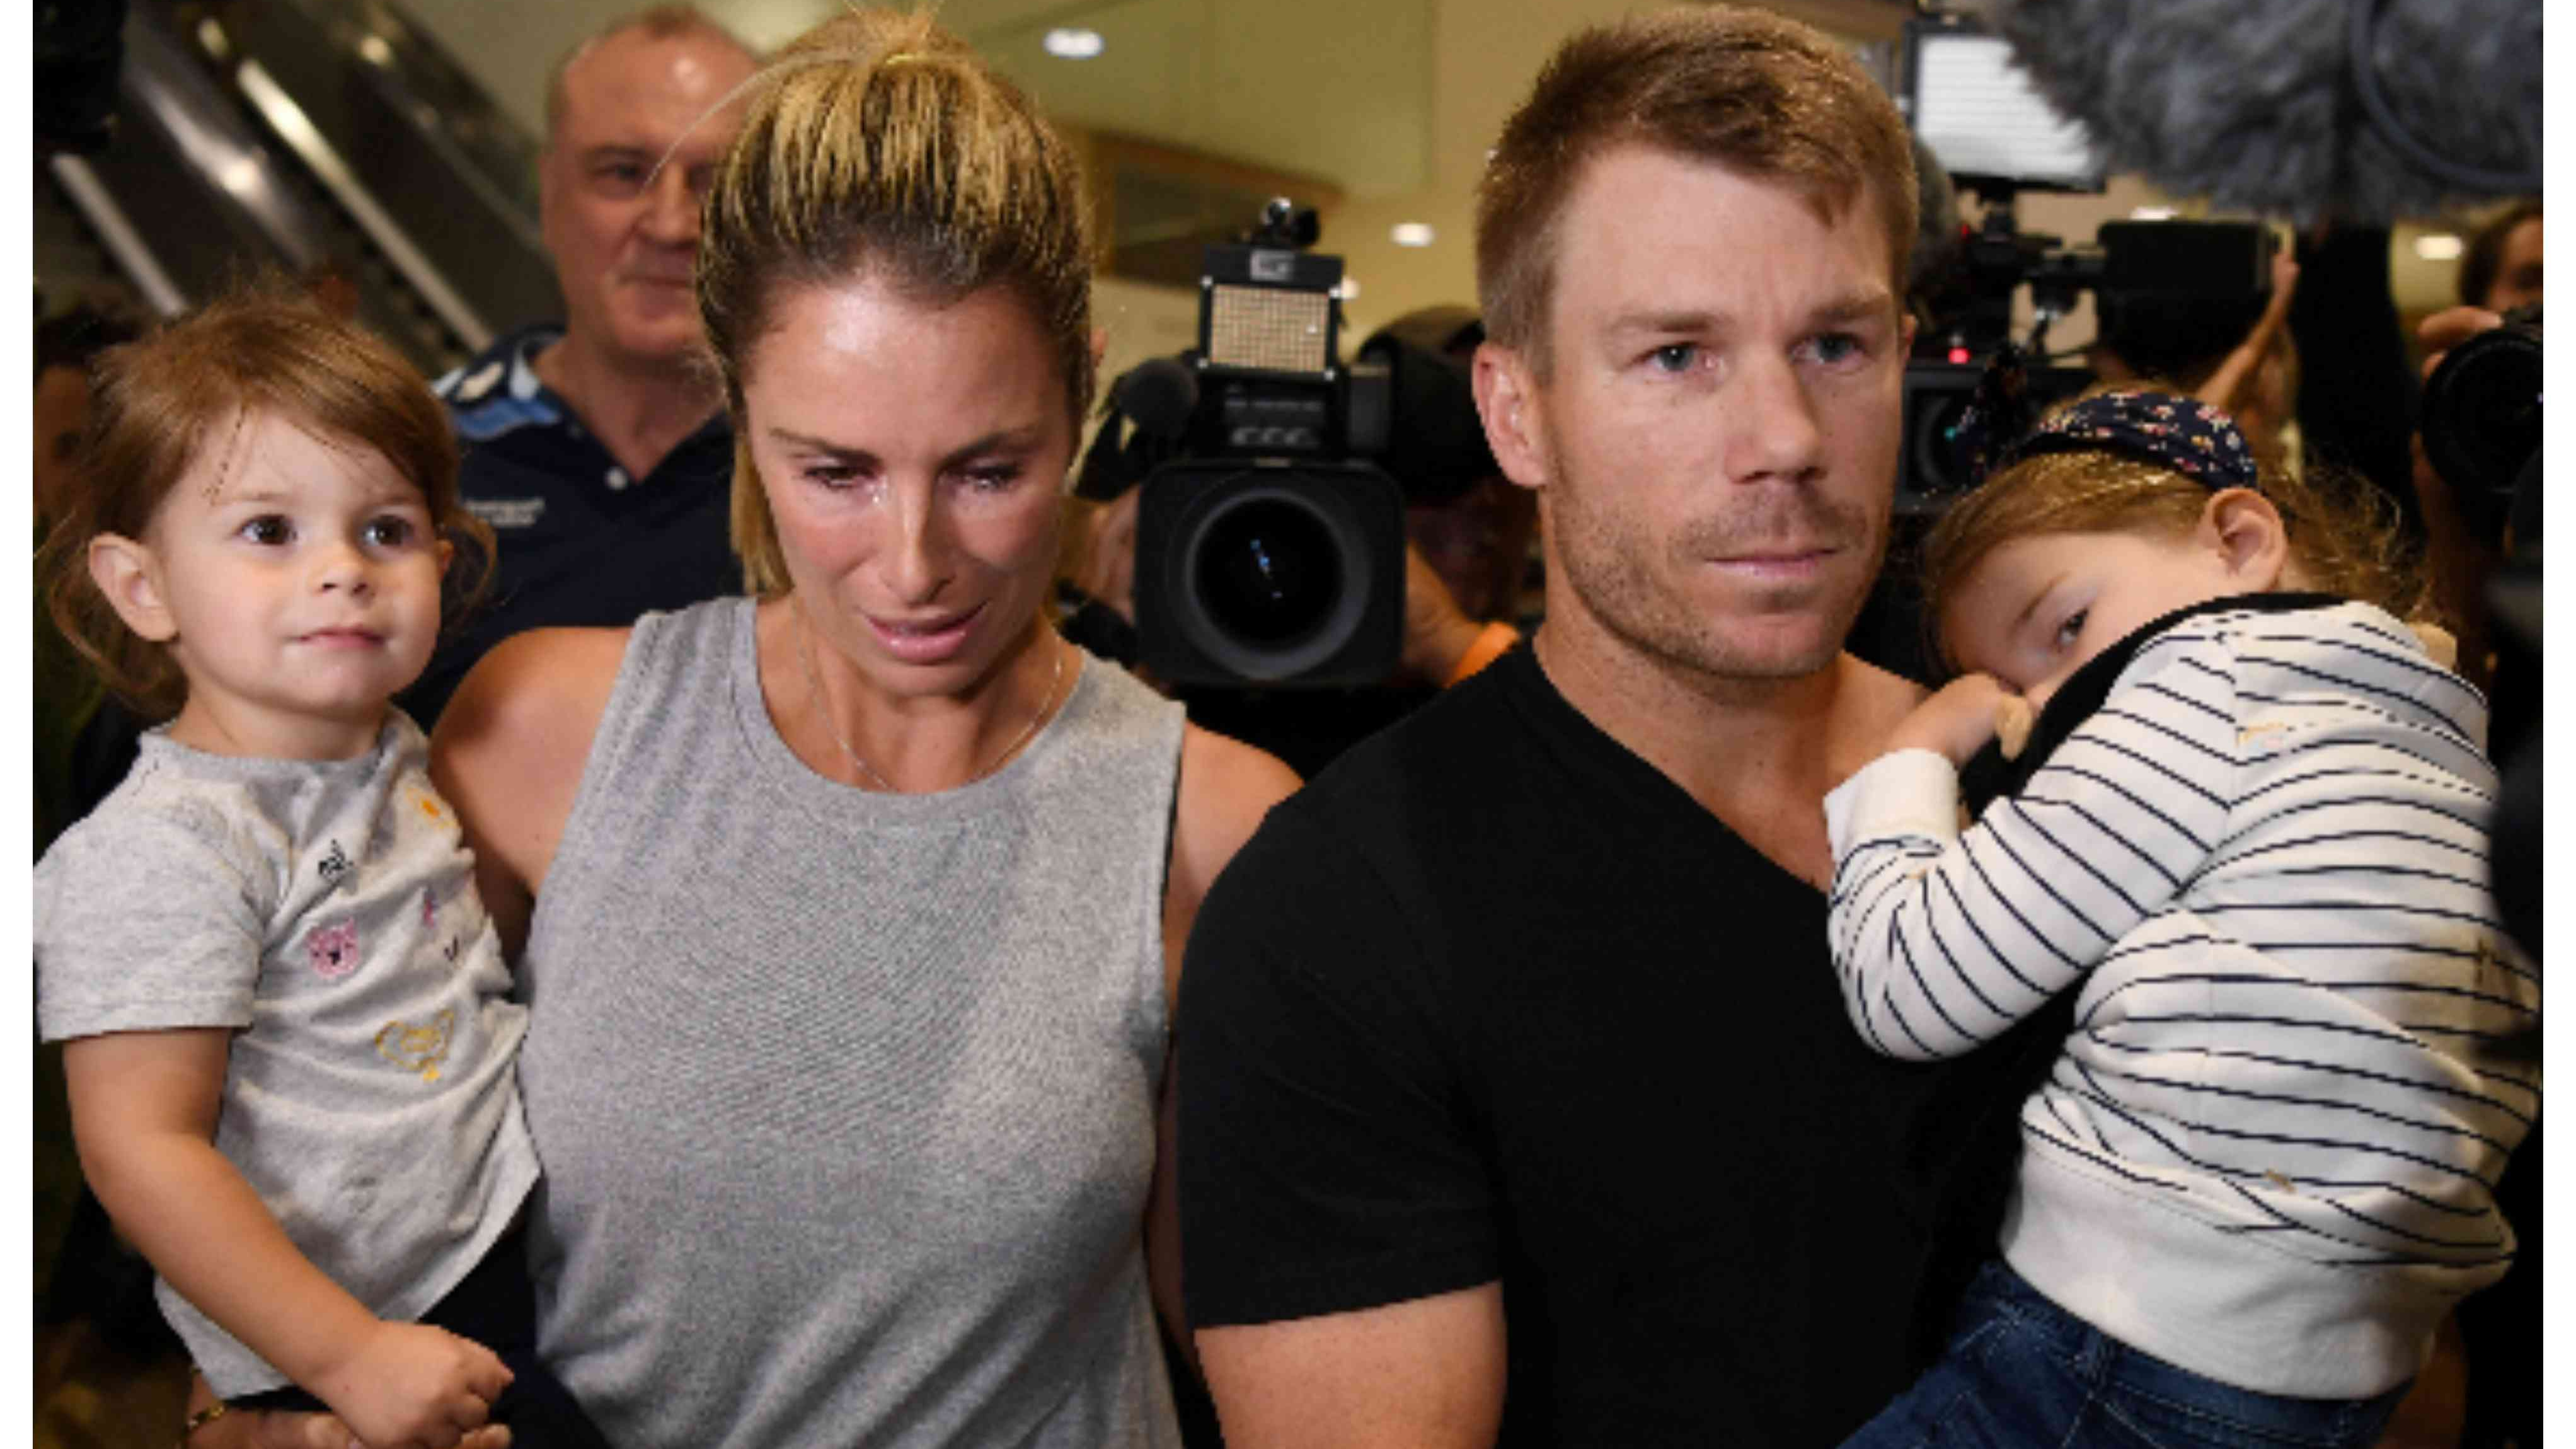 David Warner's wife endured unfortunate miscarriage following ball-tampering saga